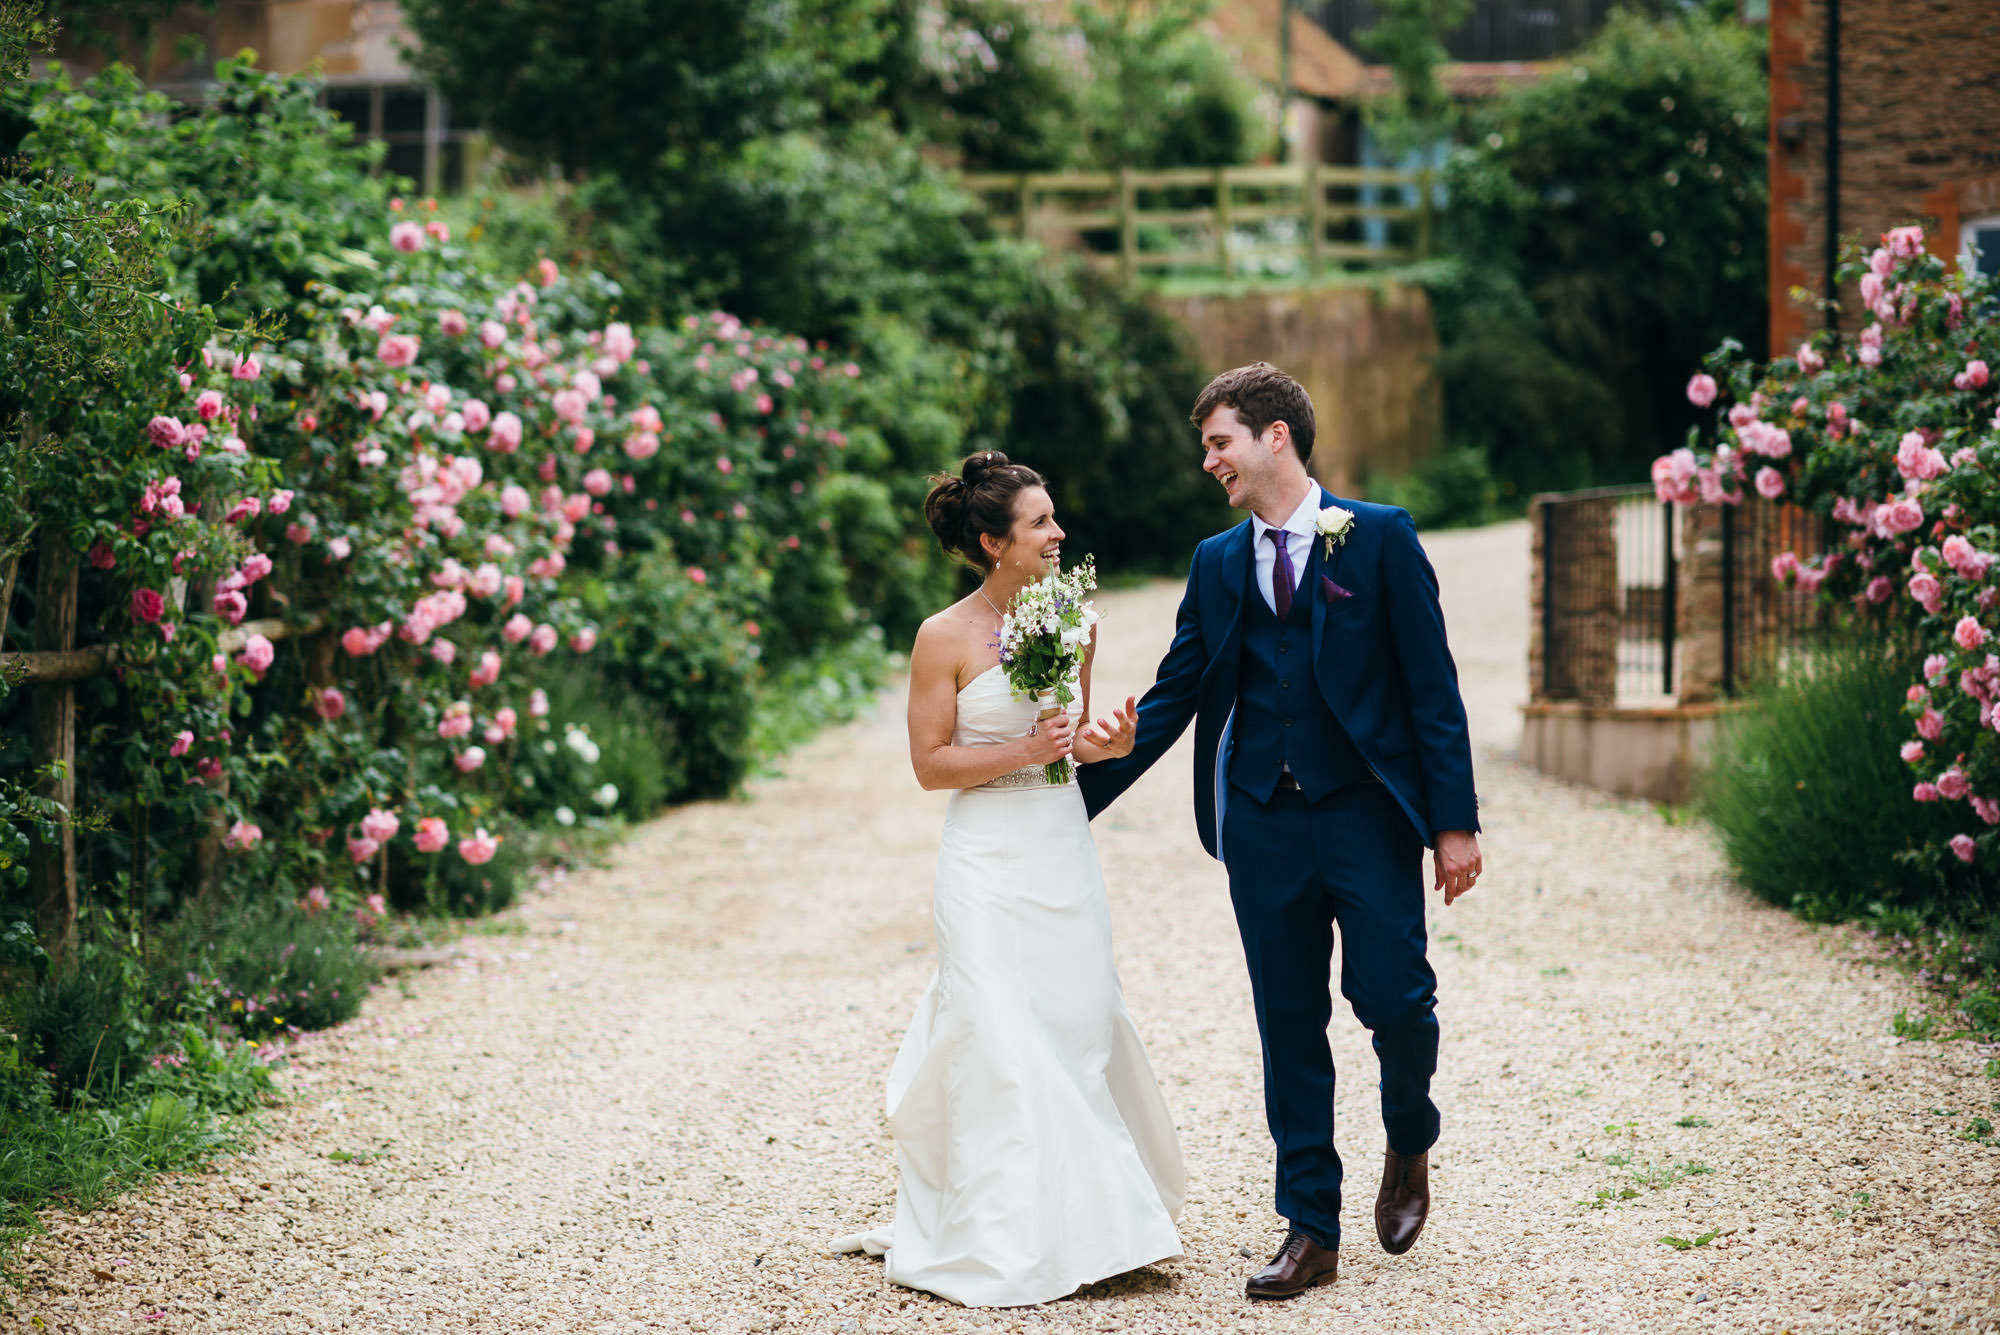 Huntstile organic farm wedding photographer